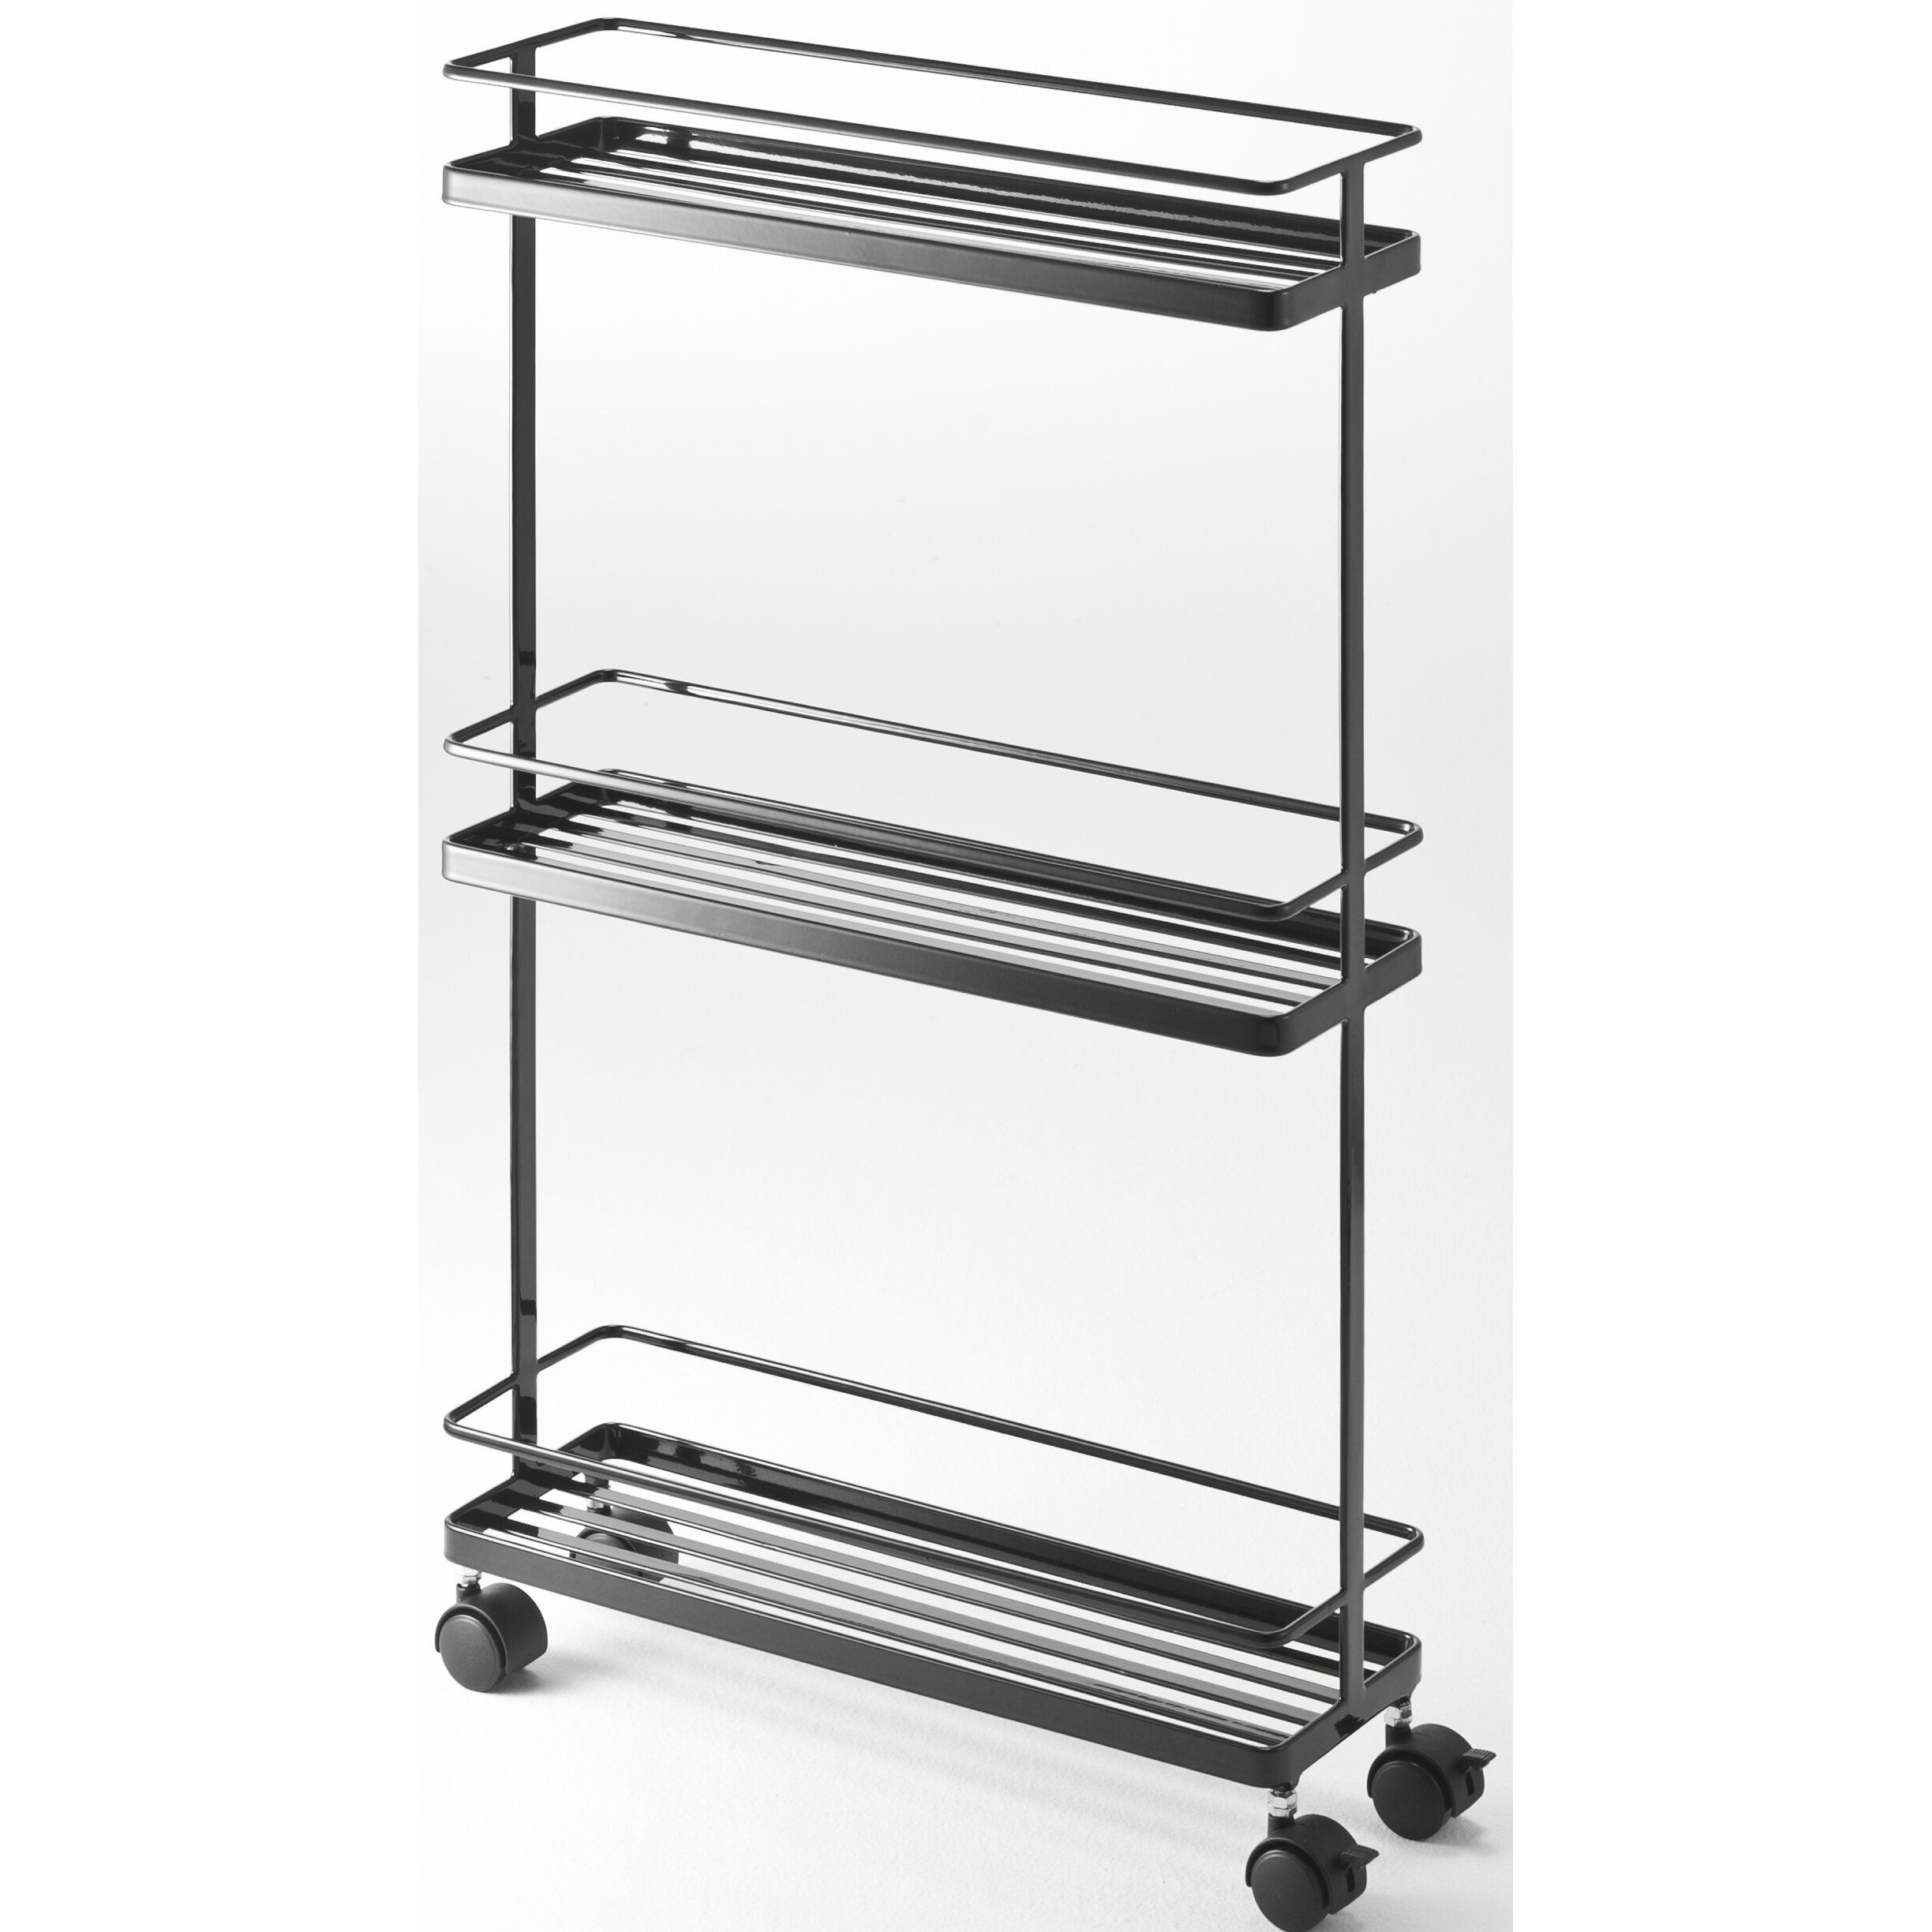 Yamazaki USA Tower Rolling Kitchen Storage Cart & Reviews